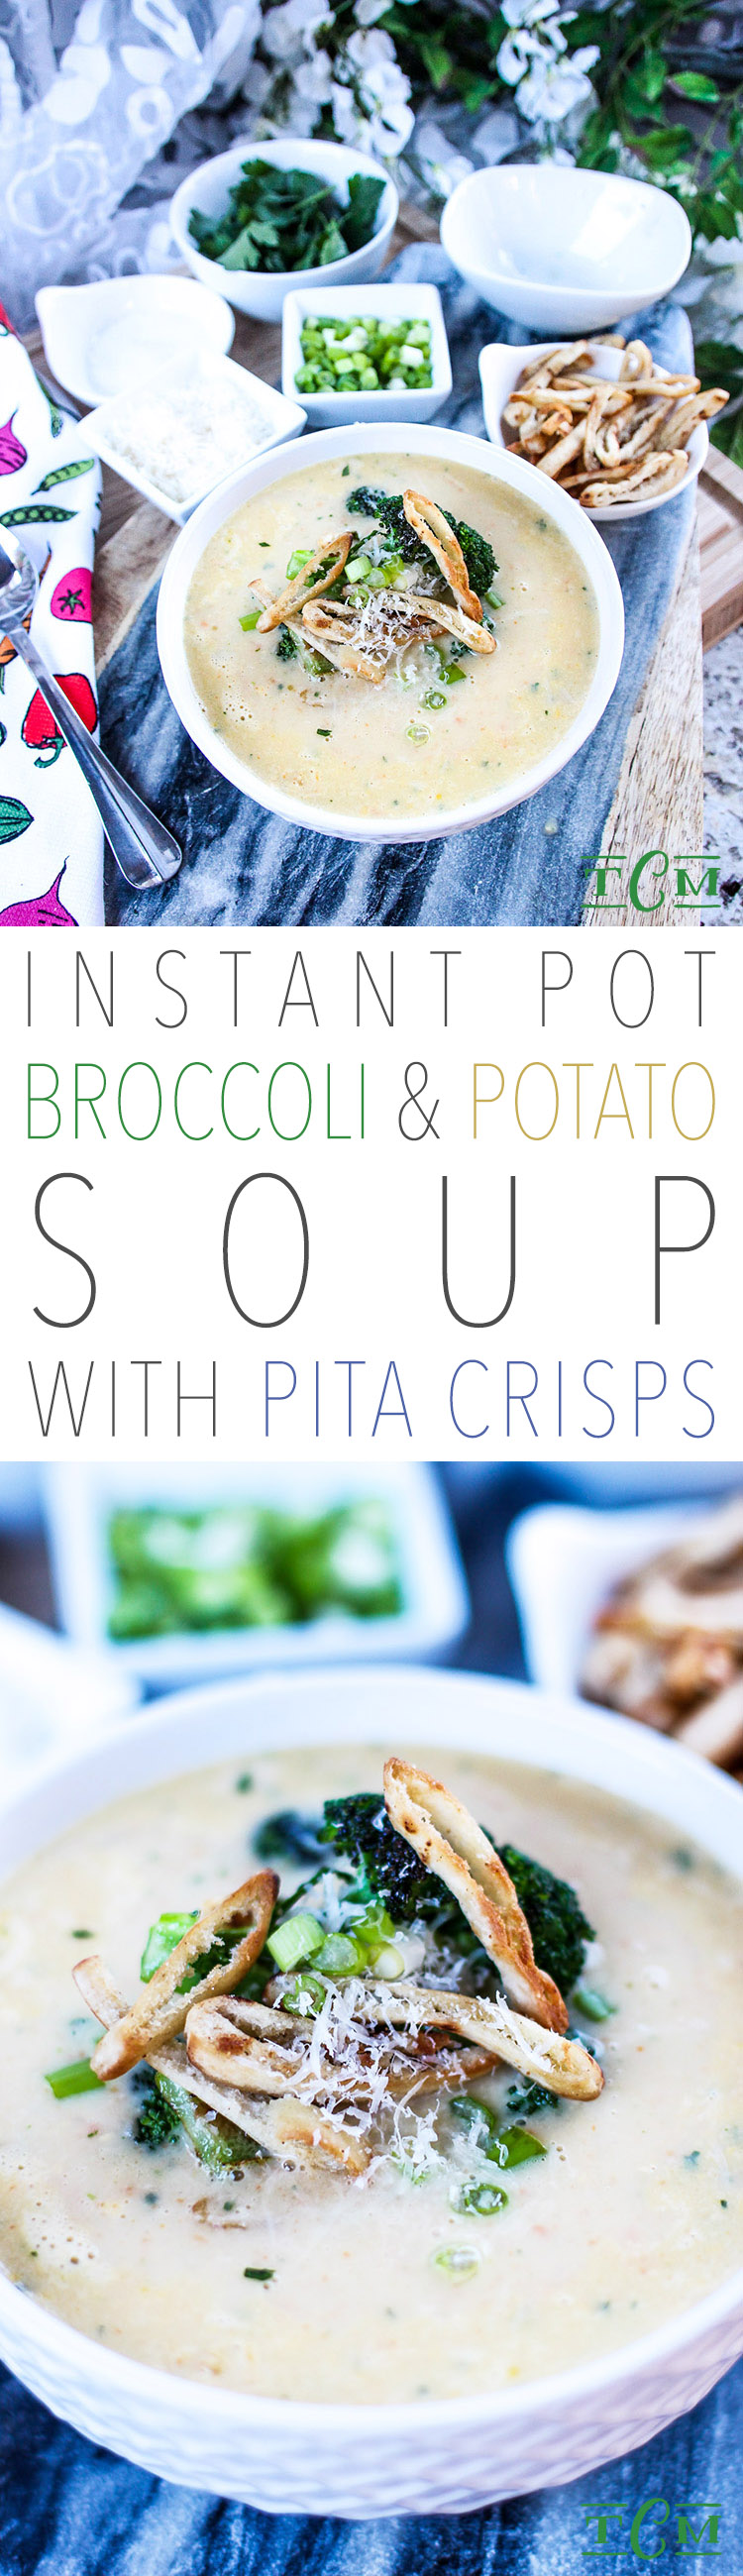 http://thecottagemarket.com/wp-content/uploads/2017/03/Potato-Broccoli-Soup-Toasted-Pita-TOWER-1.jpg